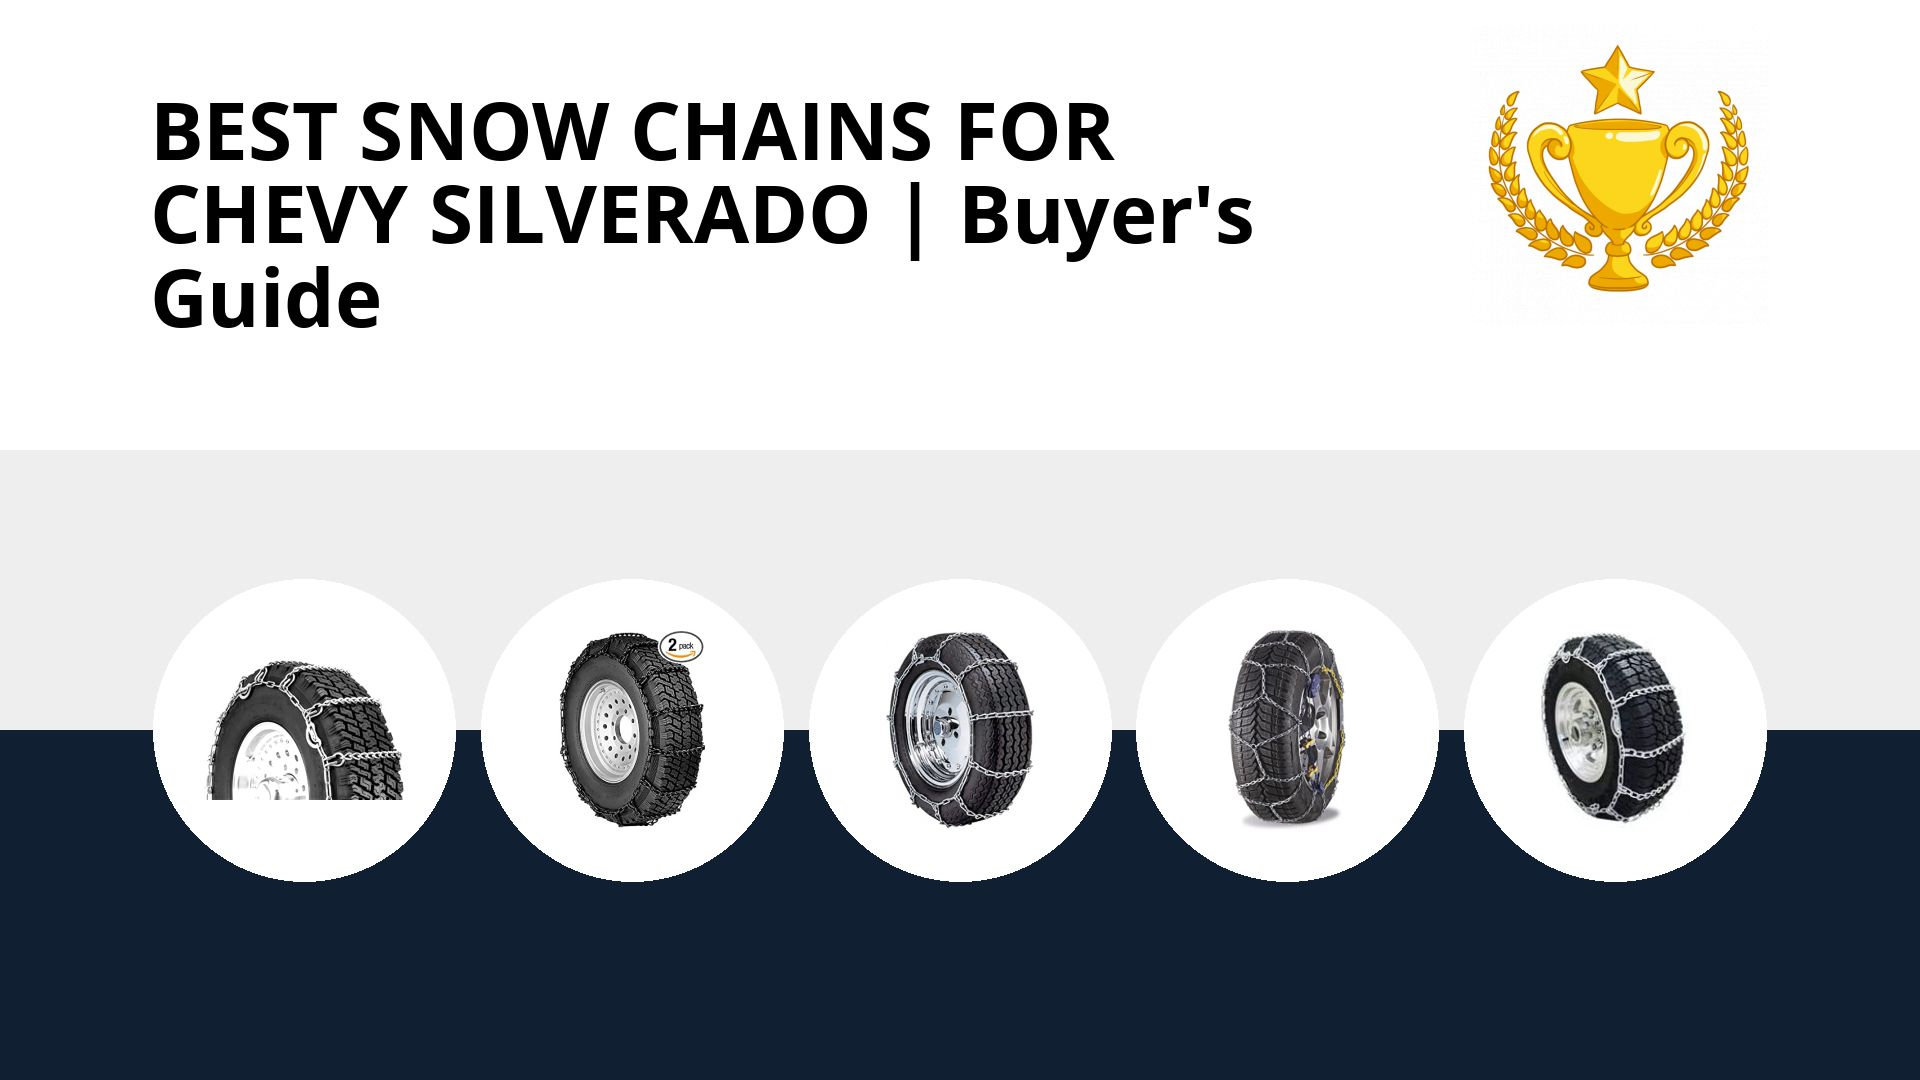 Best Snow Chains For Chevy Silverado: image